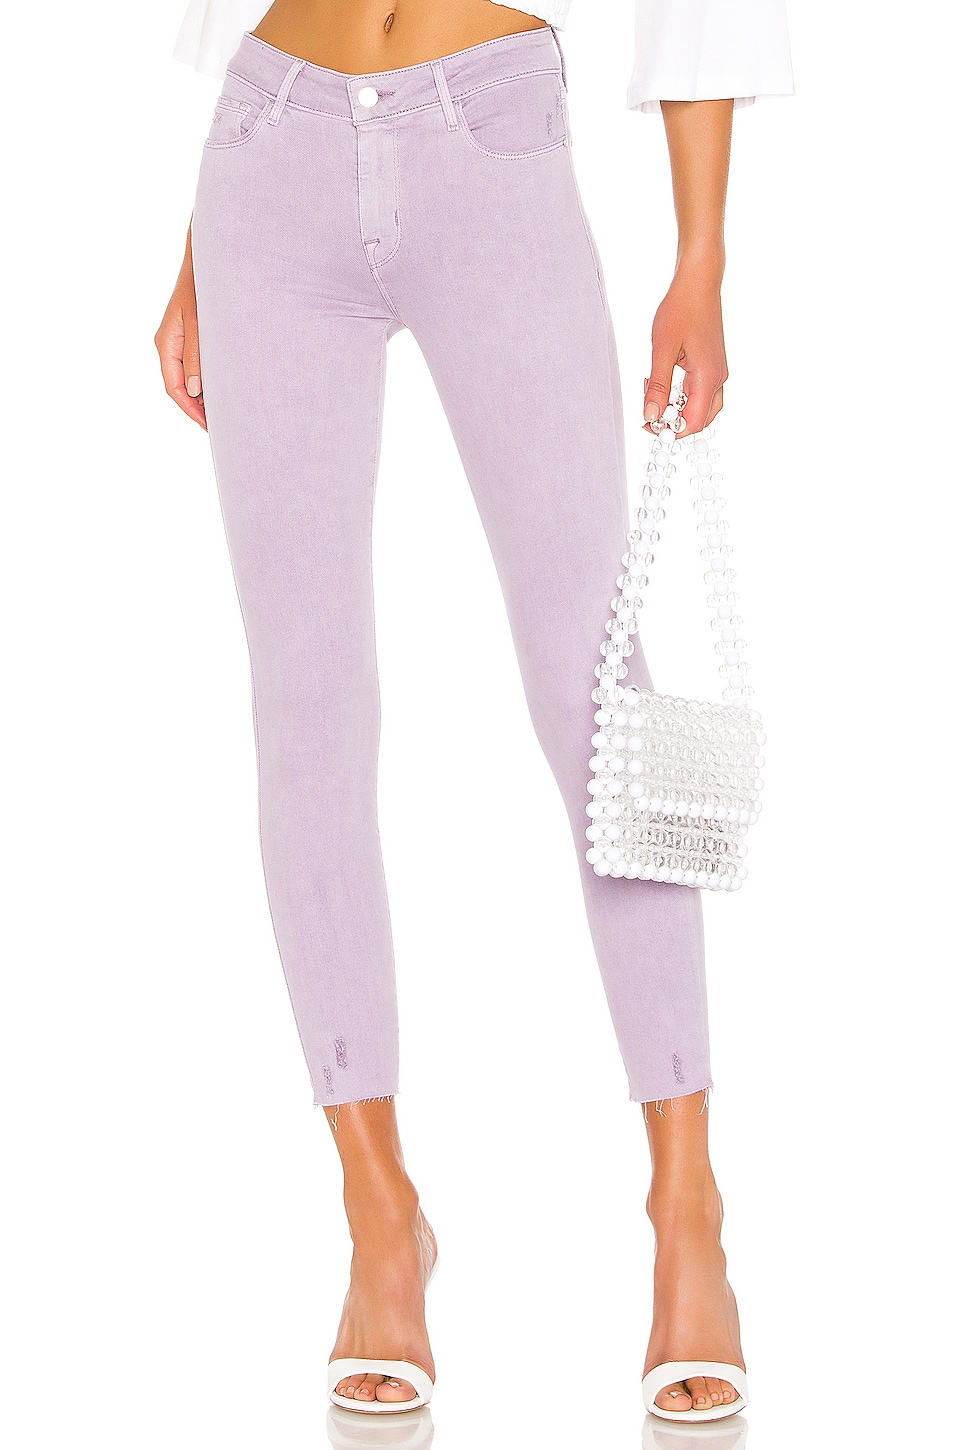 Sanctuary Social Standard Ankle Skinny Jean in Charming Lilac